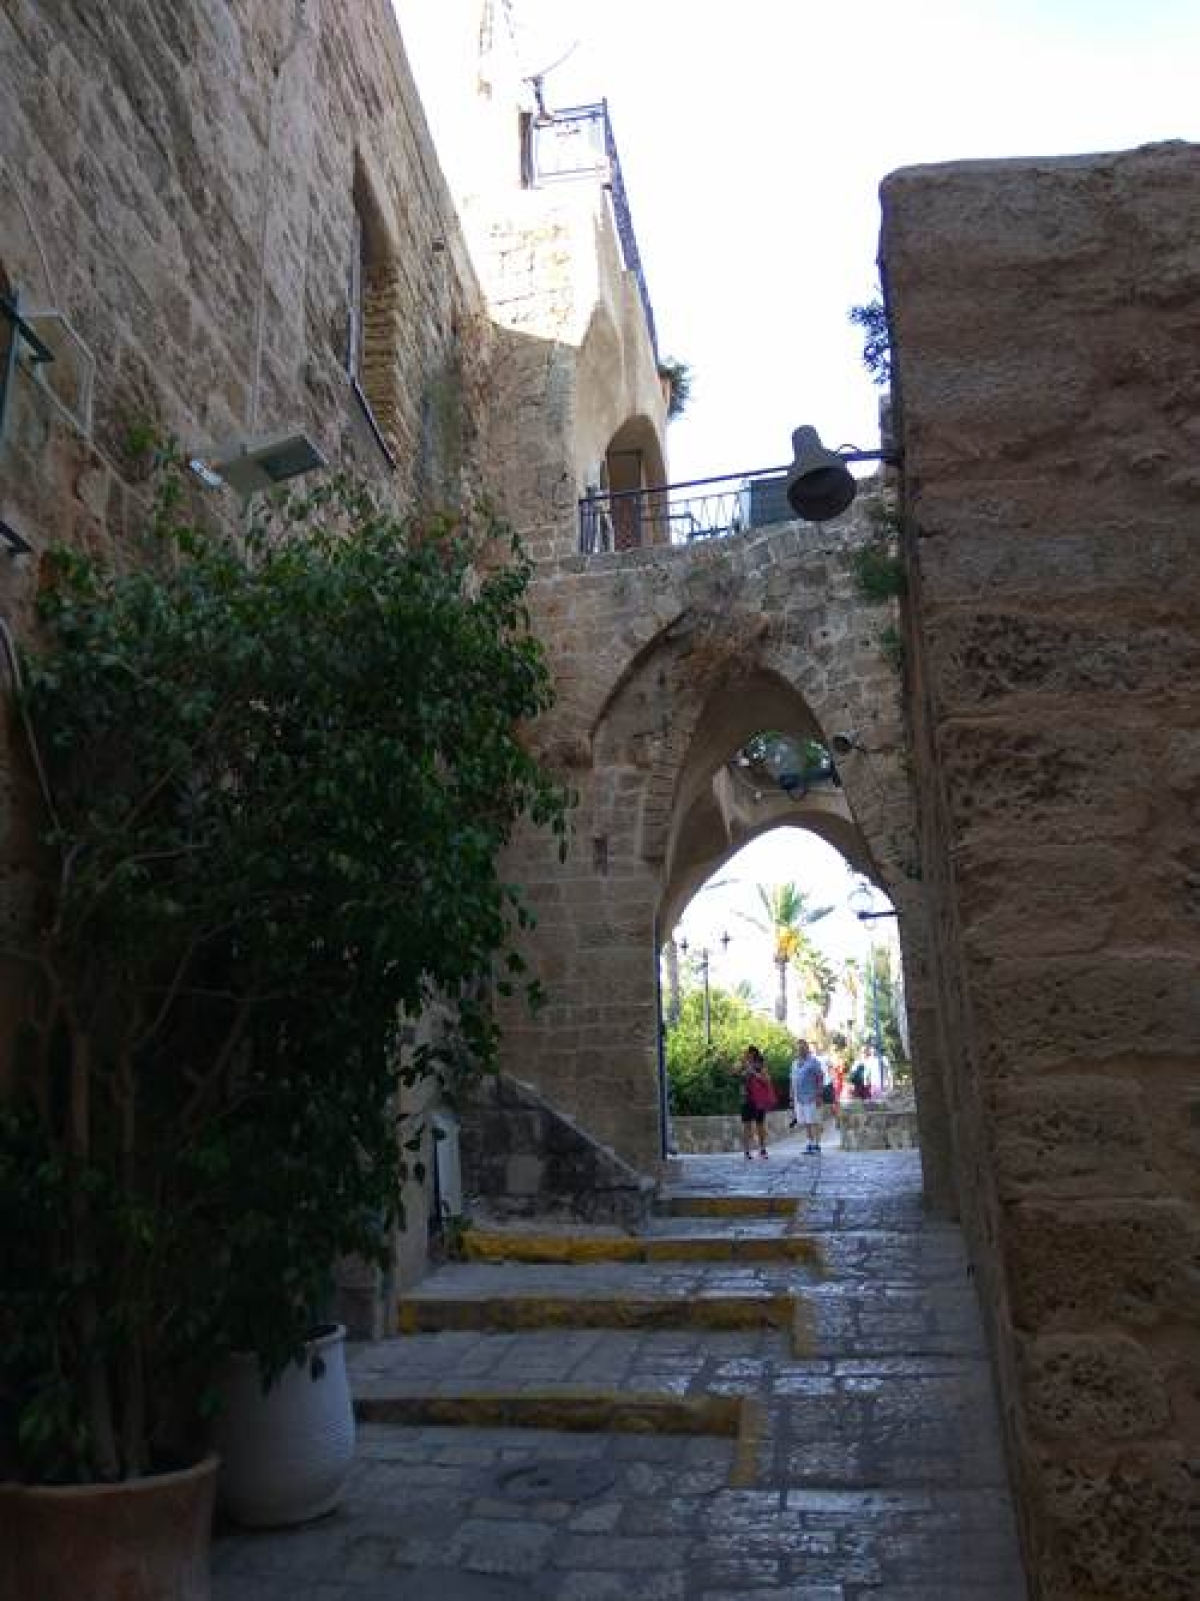 One of the many narrow lanes in Jaffa